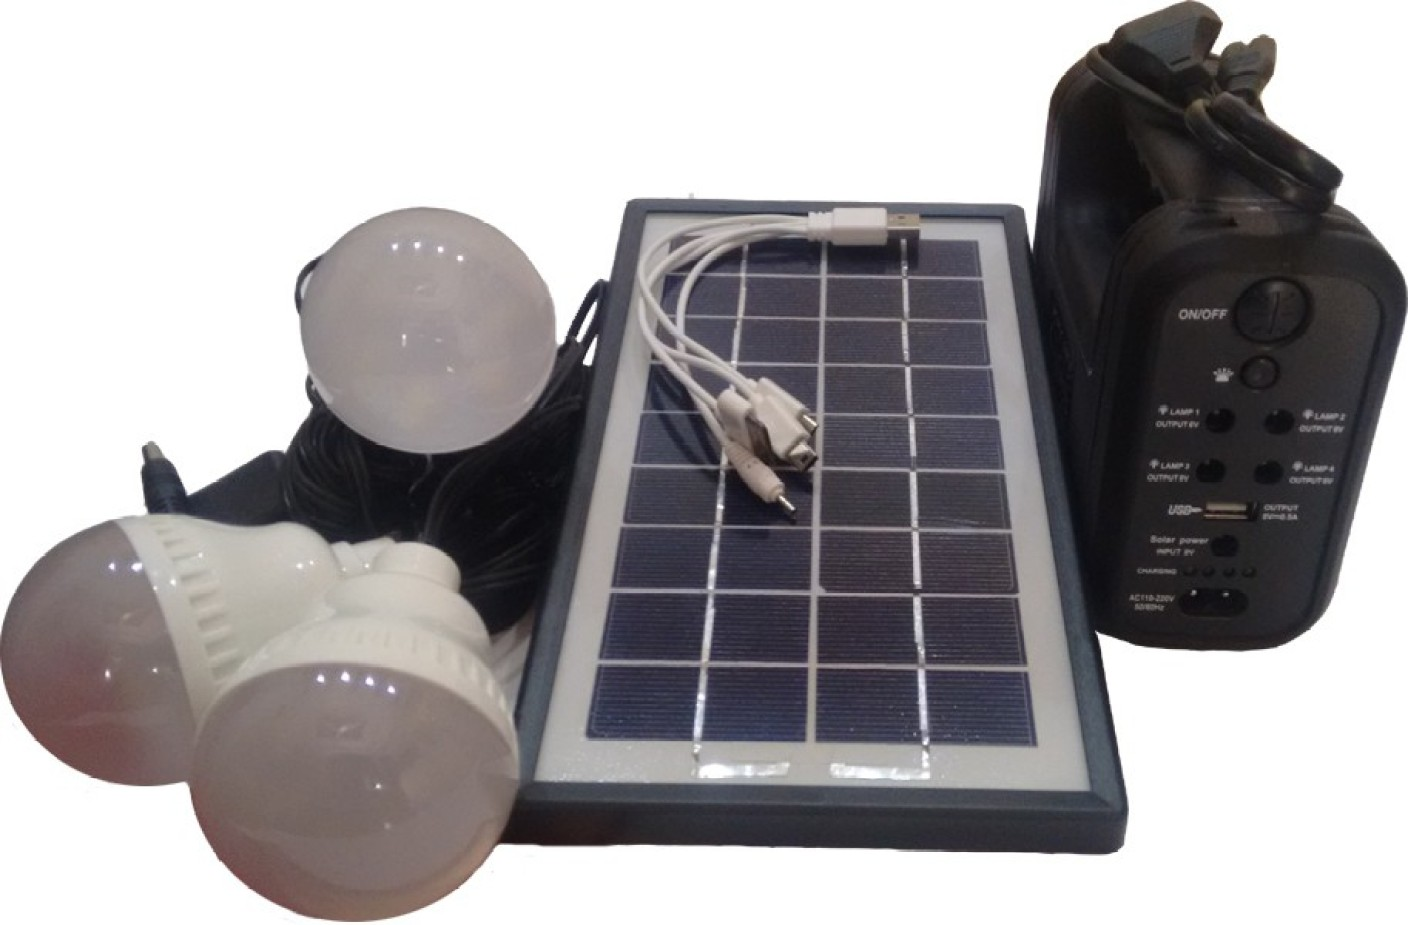 Gdlite Gd 8017a Solar Lights Price In India Buy Gdlite